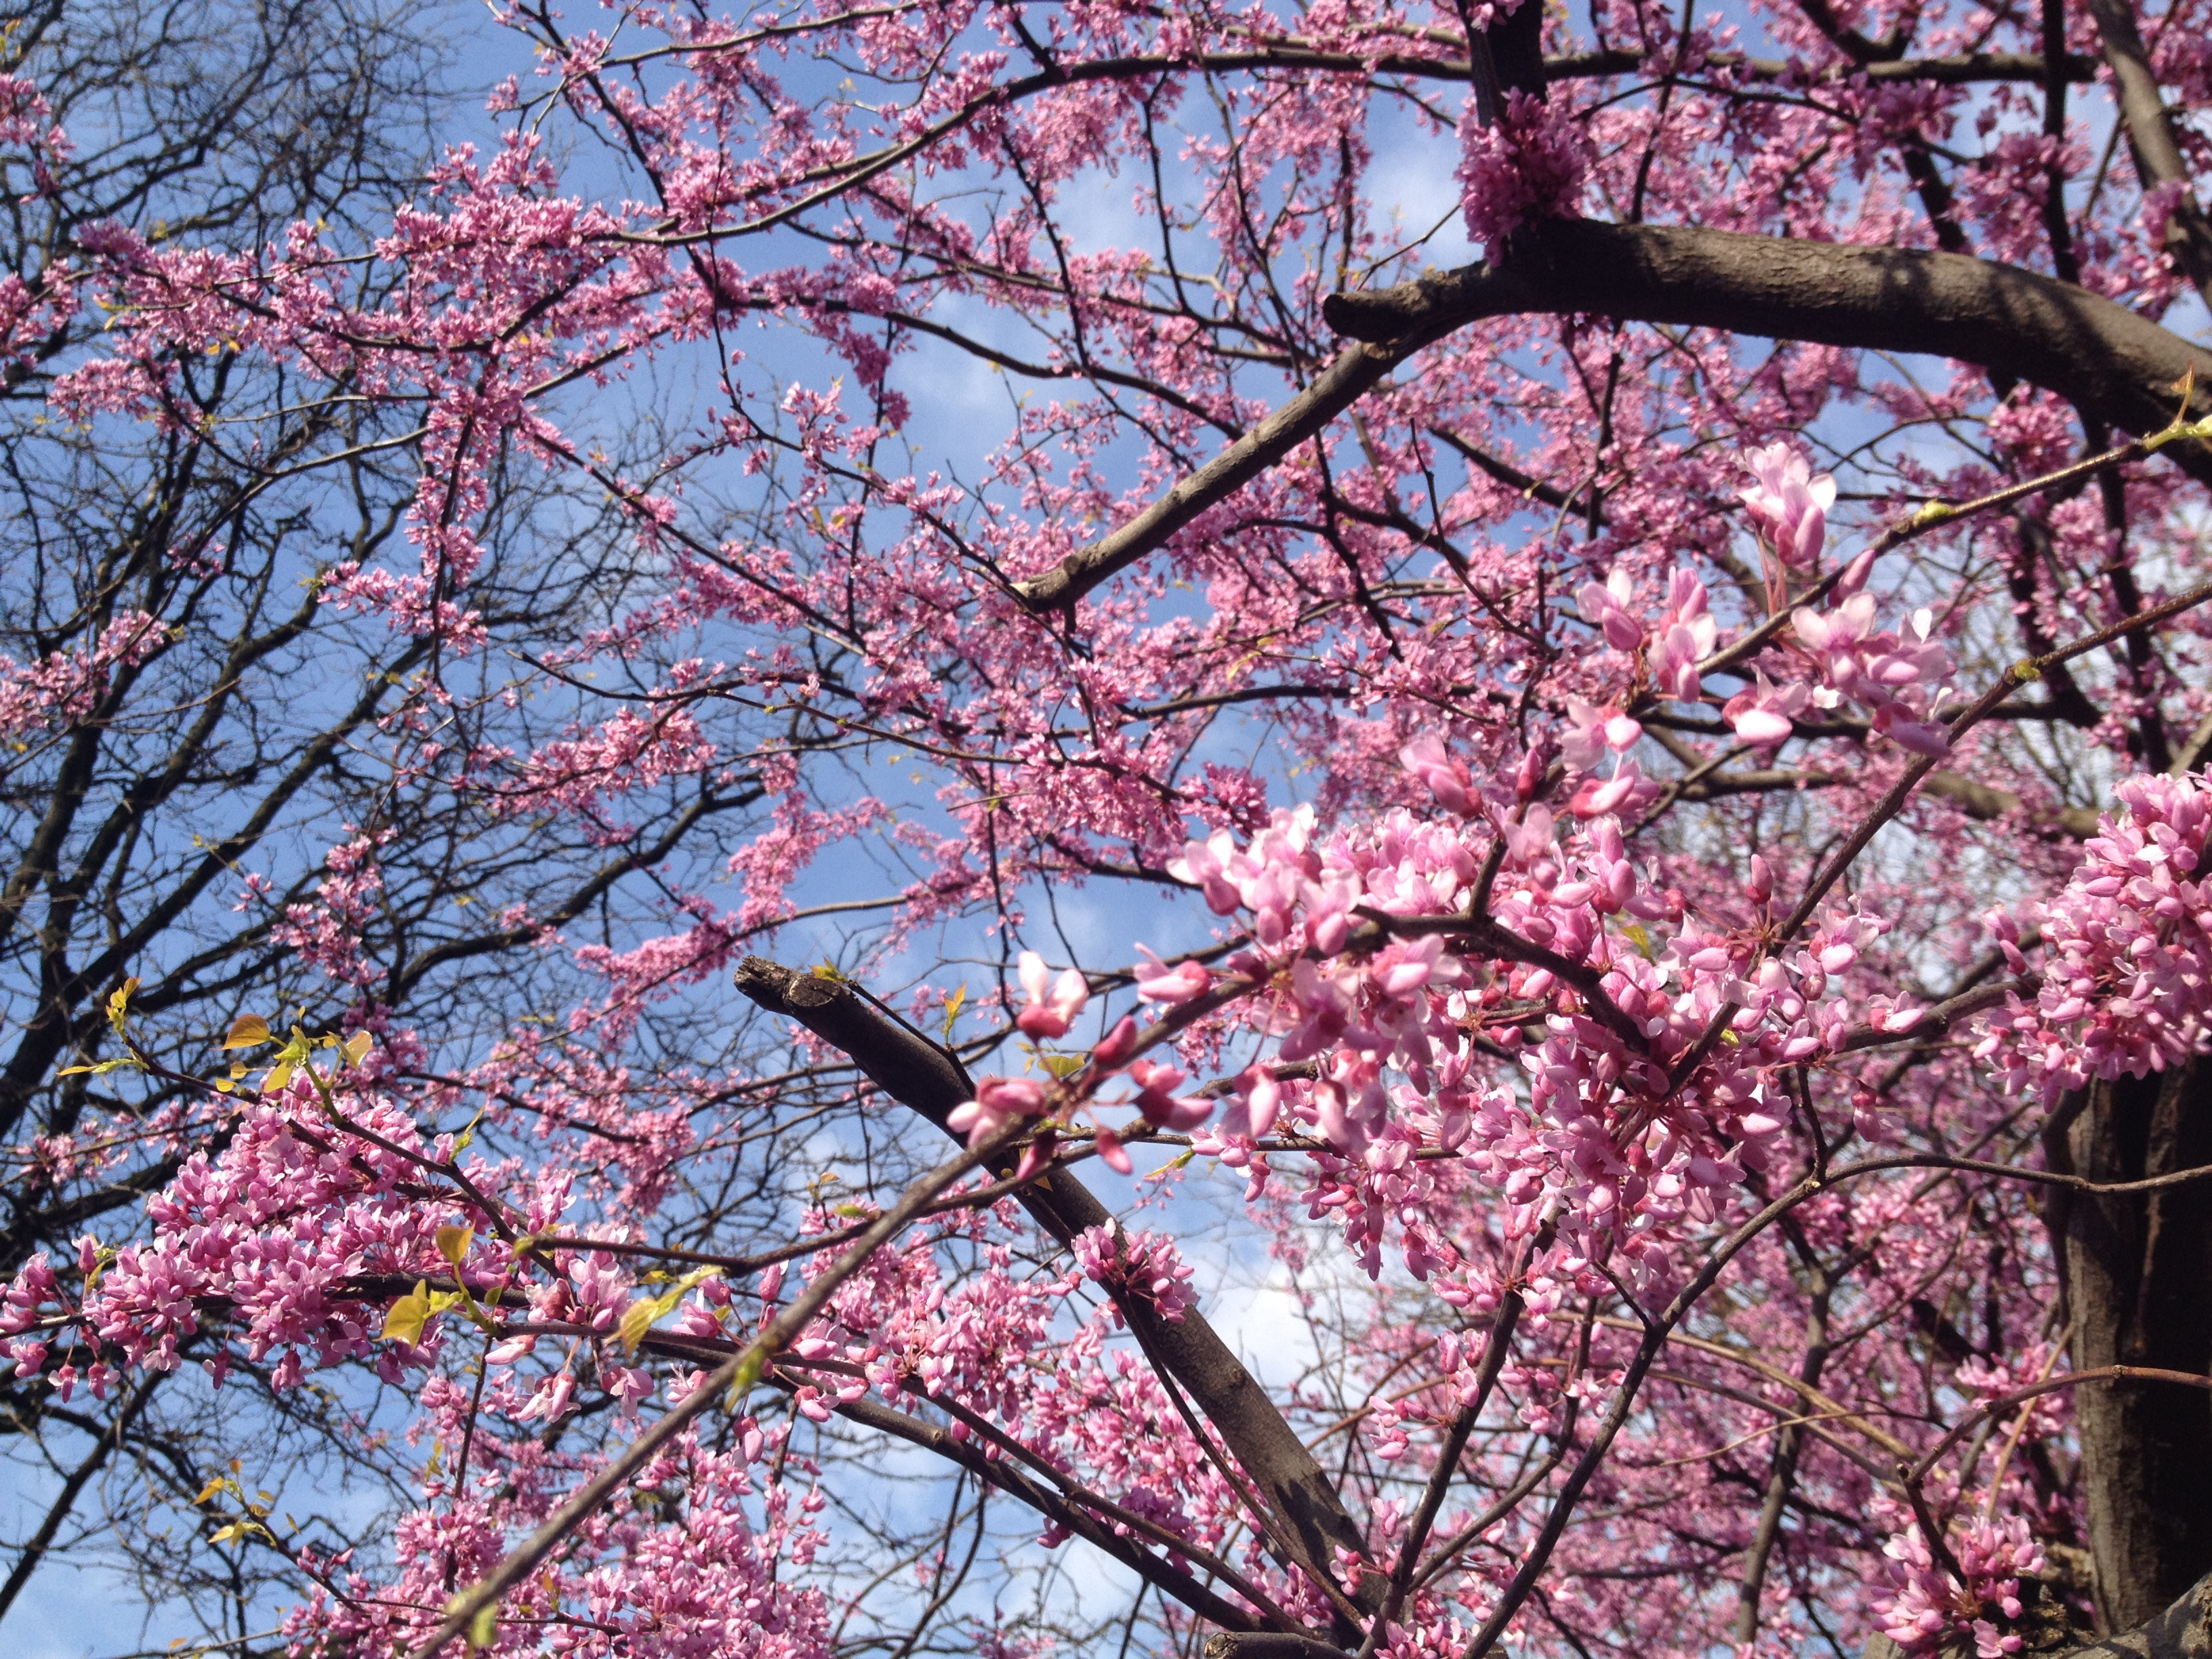 april, cherry blossoms in central and riverside parks